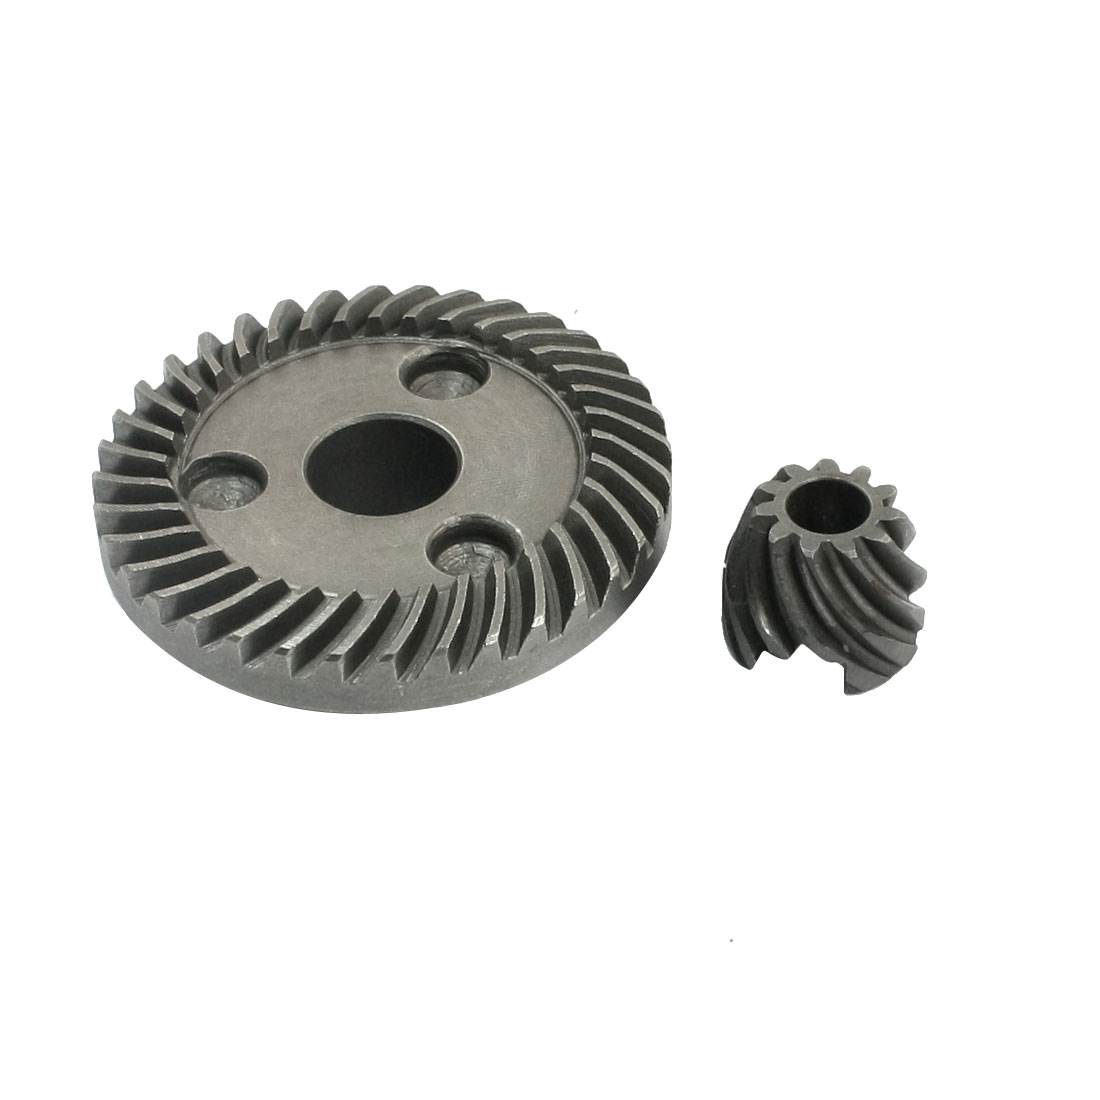 Power Tool Repairing Spiral Bevel Gear Set for Makita 9523 Angle Grinder